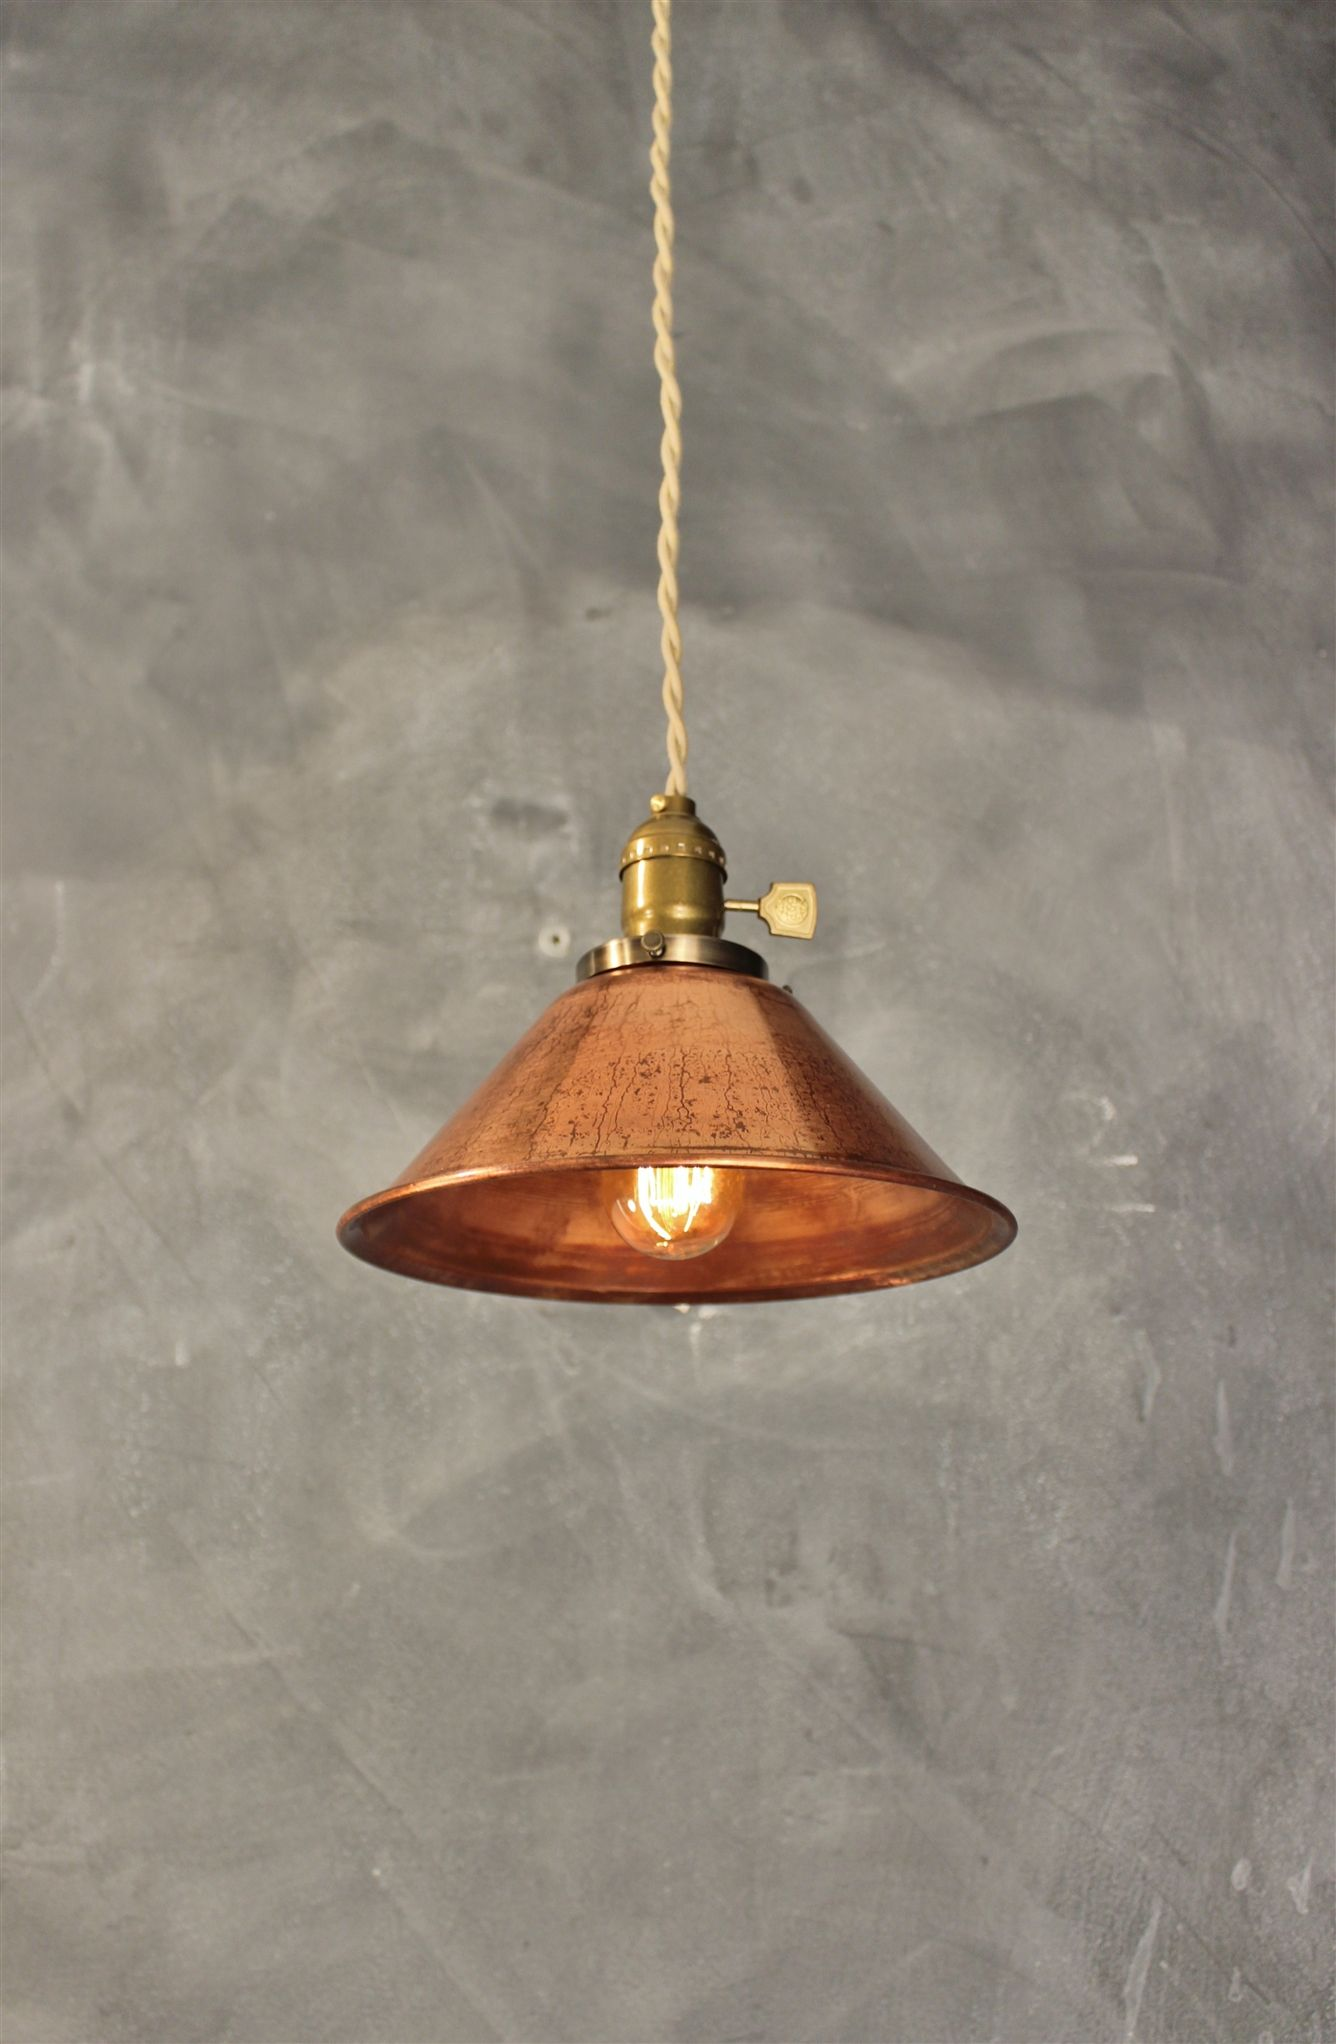 Industrial Pendant Lamp W Weathered Copper Lamp Shade Vintage Factory Light From Dw Vintage Lighting Co Copper Pendant Lights Copper Pendant Lamp Copper Lamps